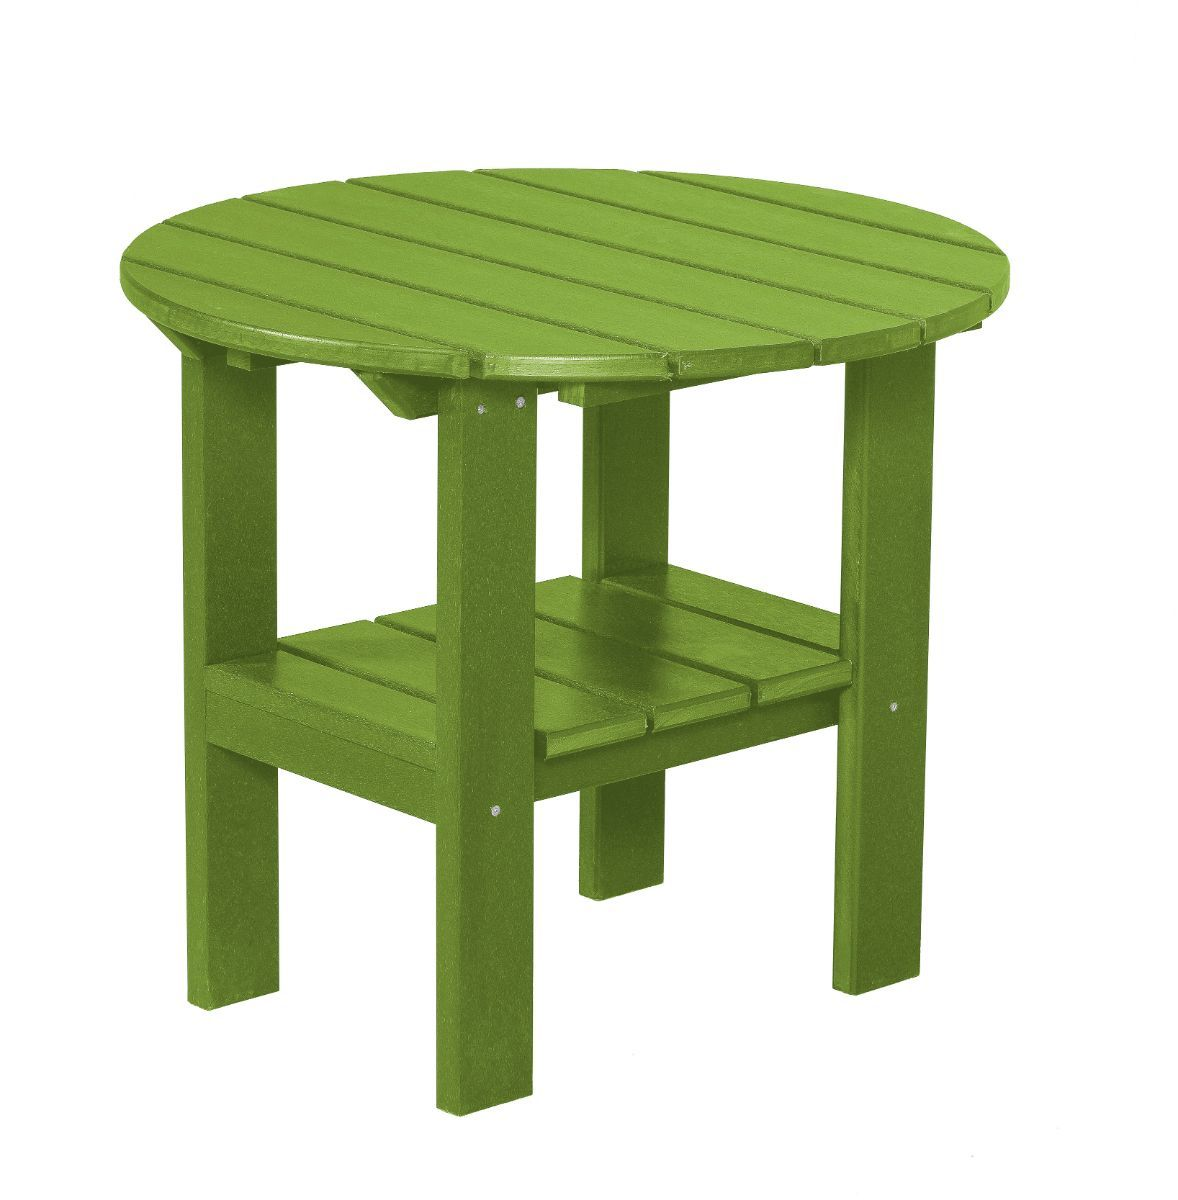 Lime Green Odessa Round Outdoor Side Table